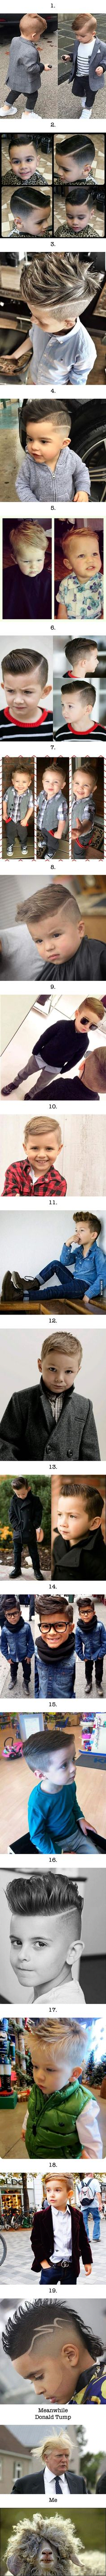 19 hairstyles that toddlers should never have...